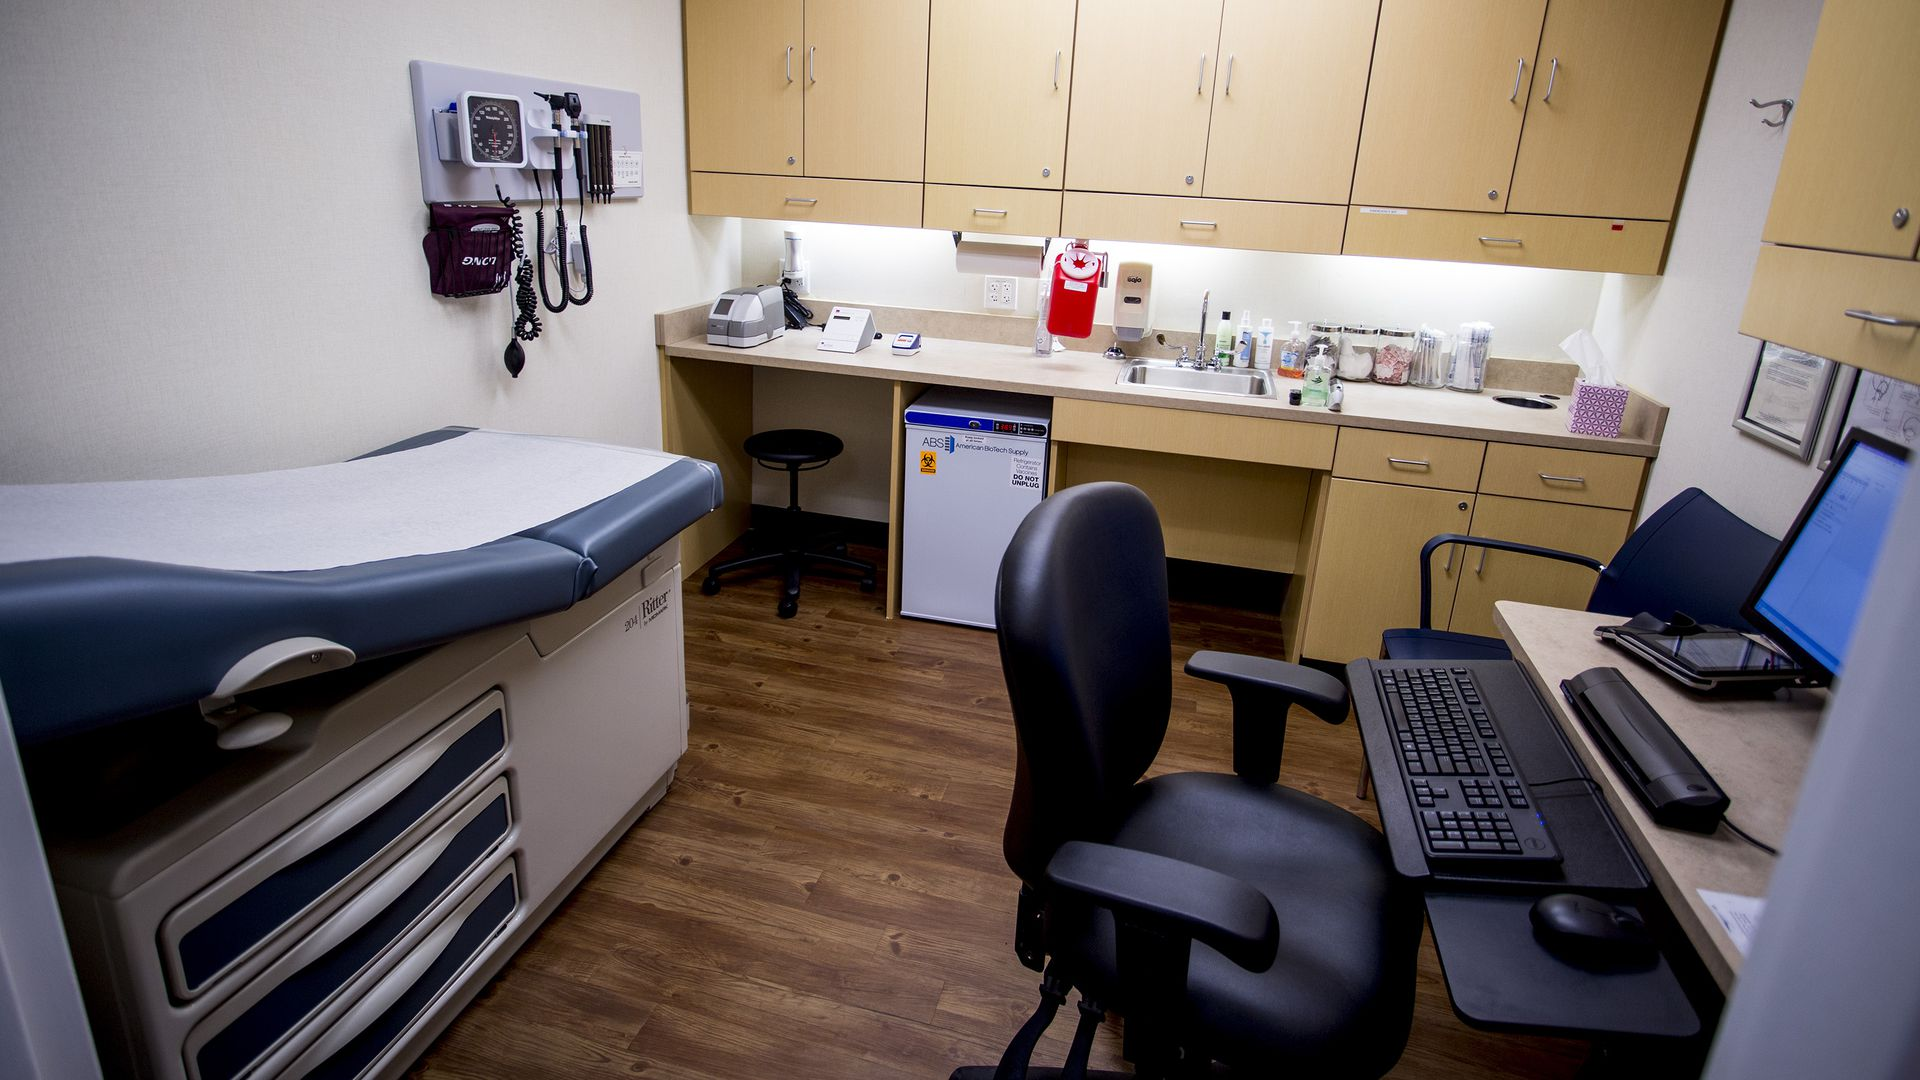 An exam room in a clinic.